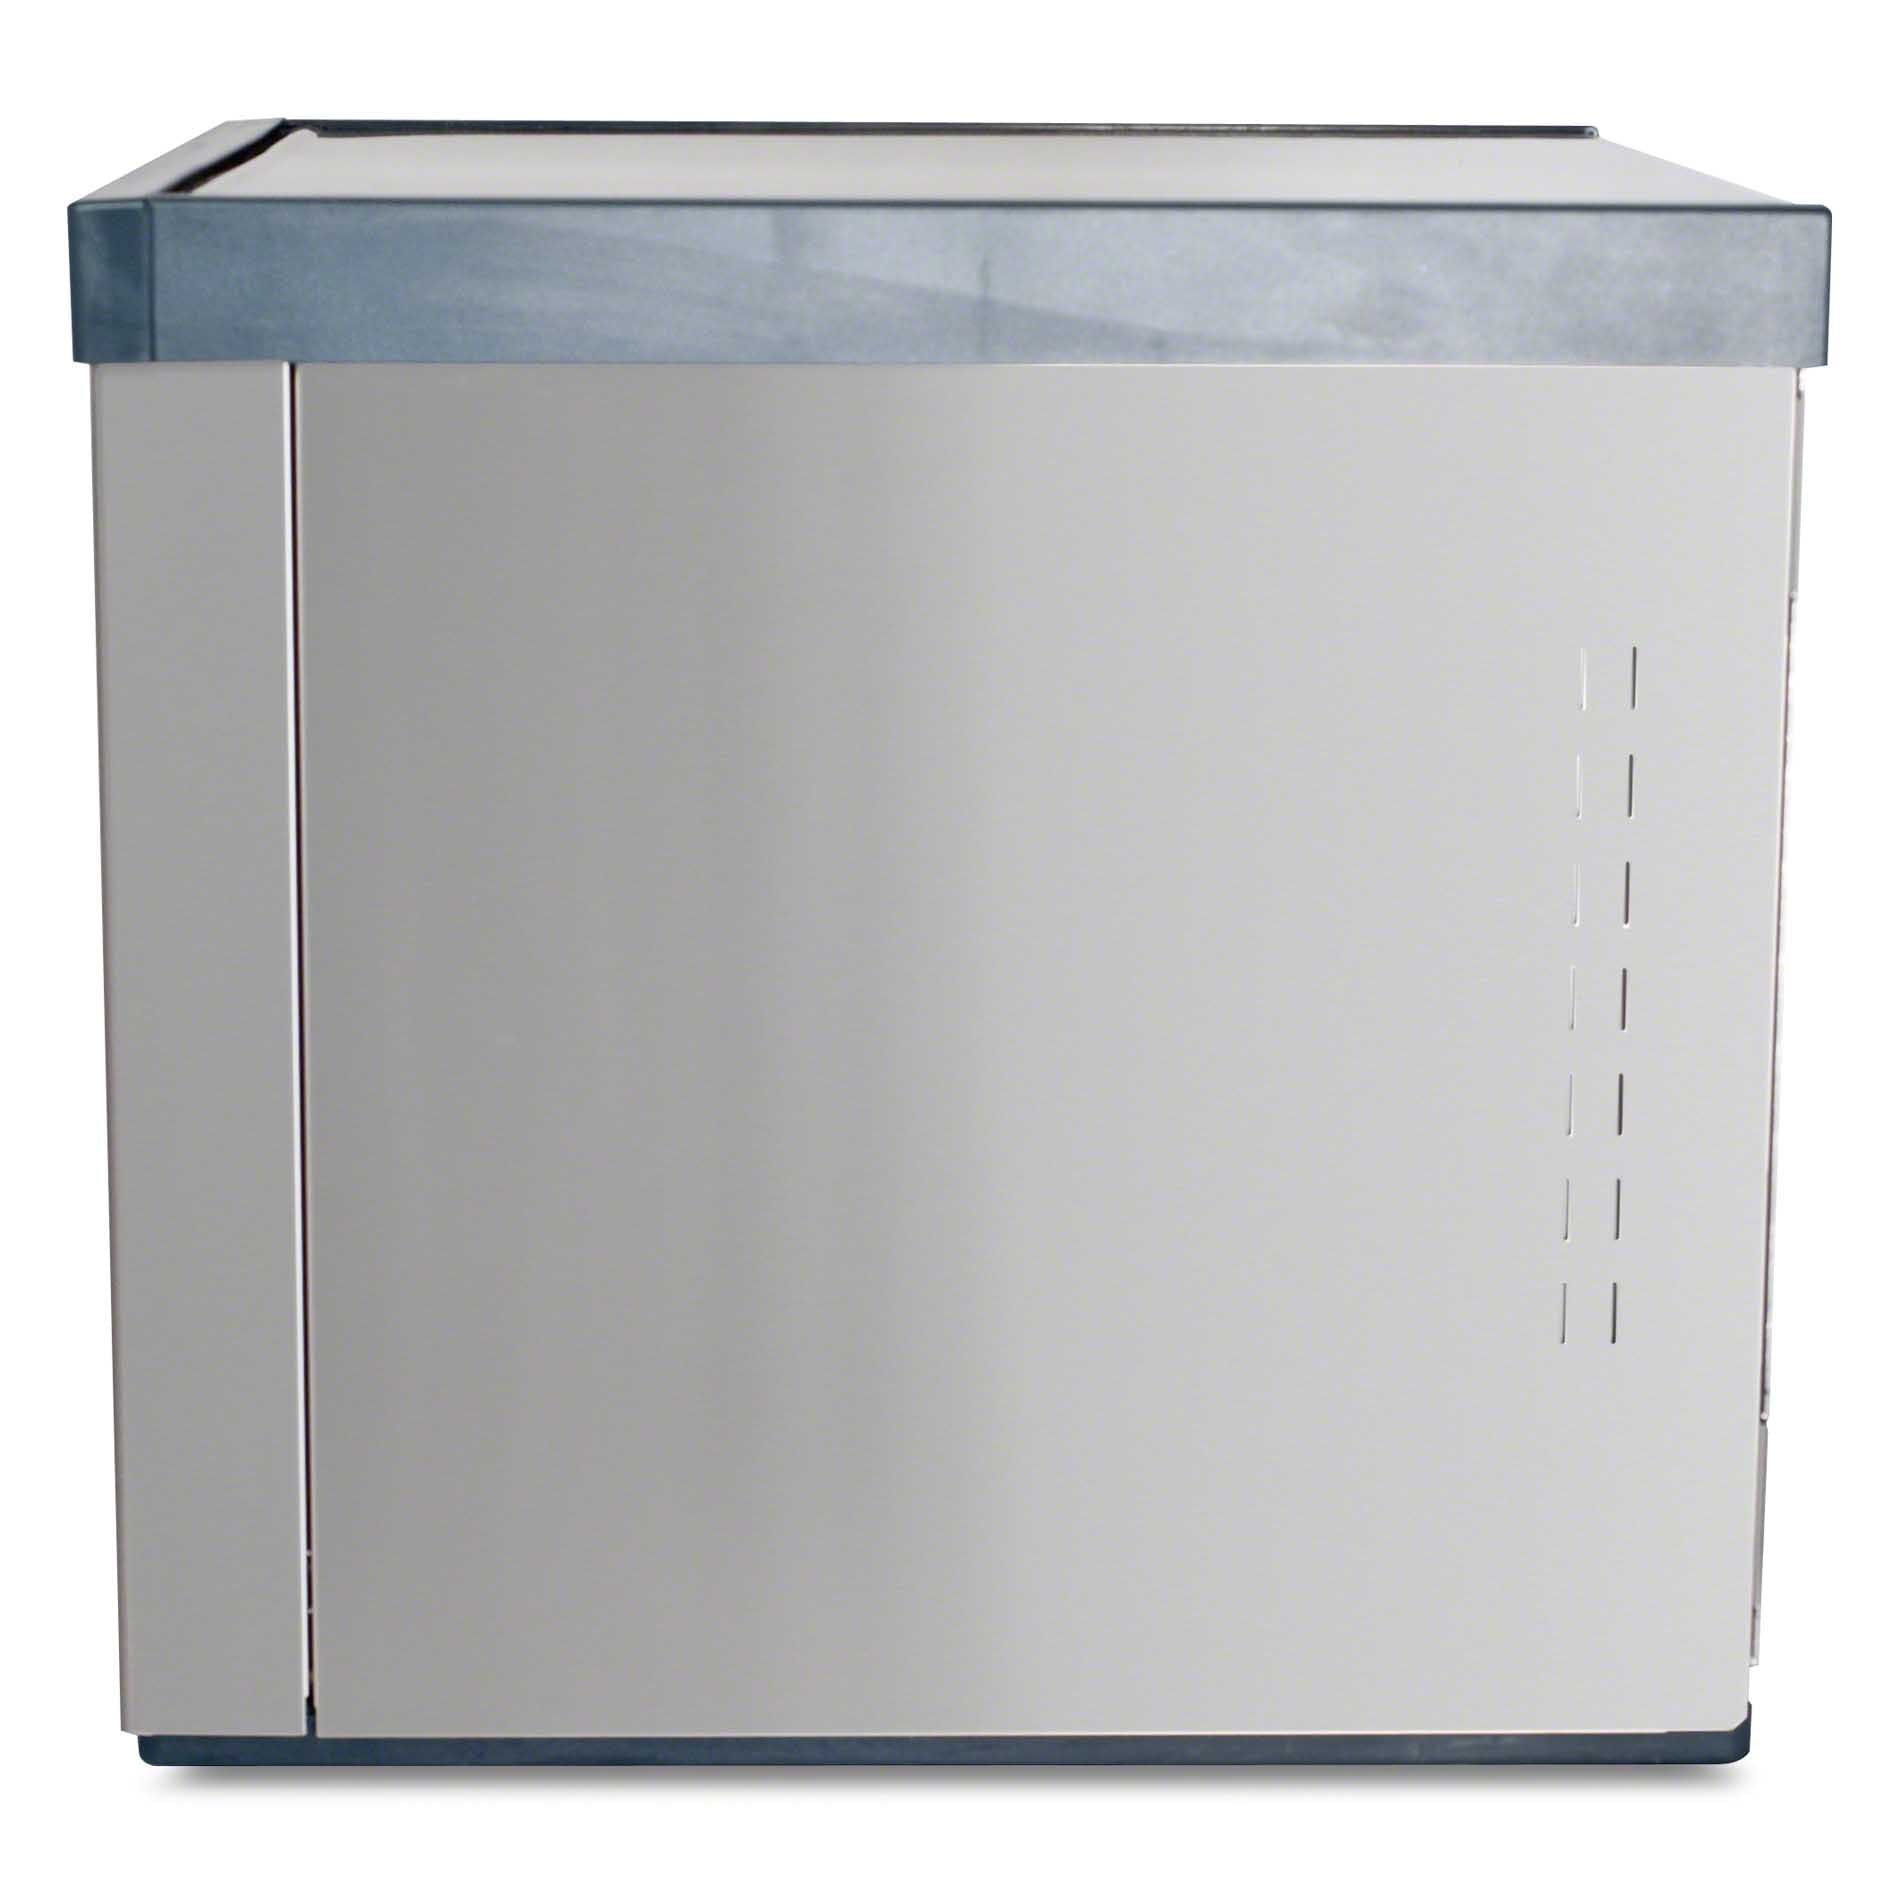 Scotsman - C0522MR-1A 517 lb Full Size Cube Ice Machine - Prodigy Series Ice machine sold by Food Service Warehouse